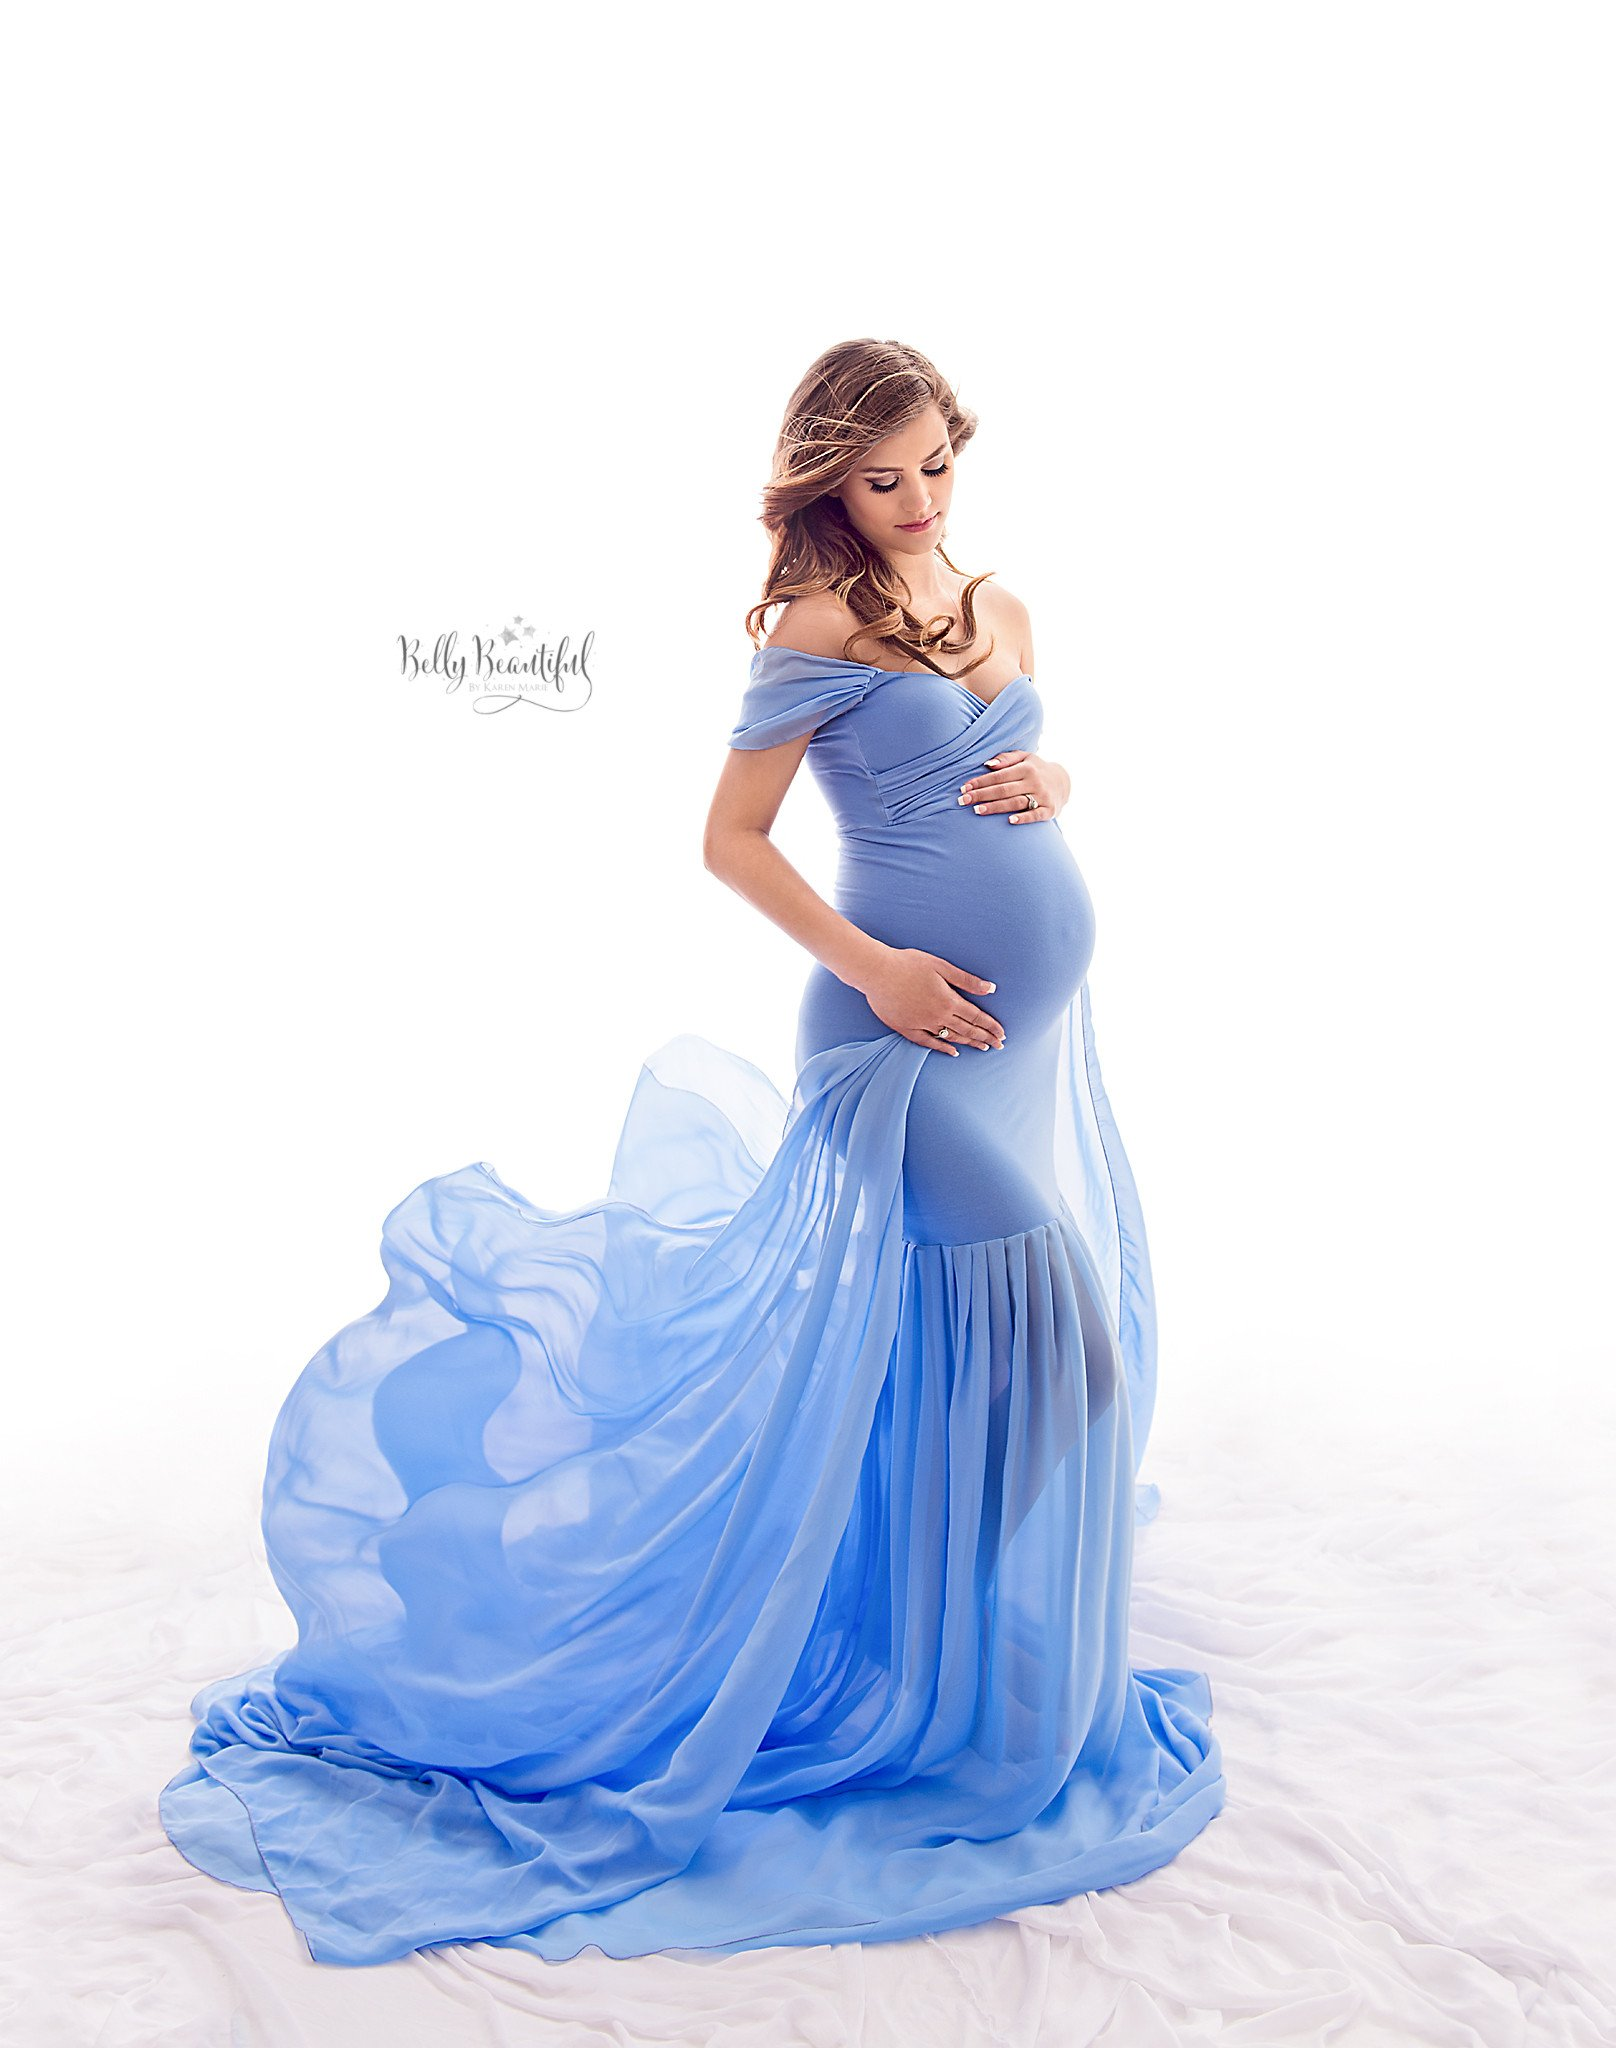 maternity angela periwinkle belly beautiful portraits 5 web res studio 2017 sew trendy image